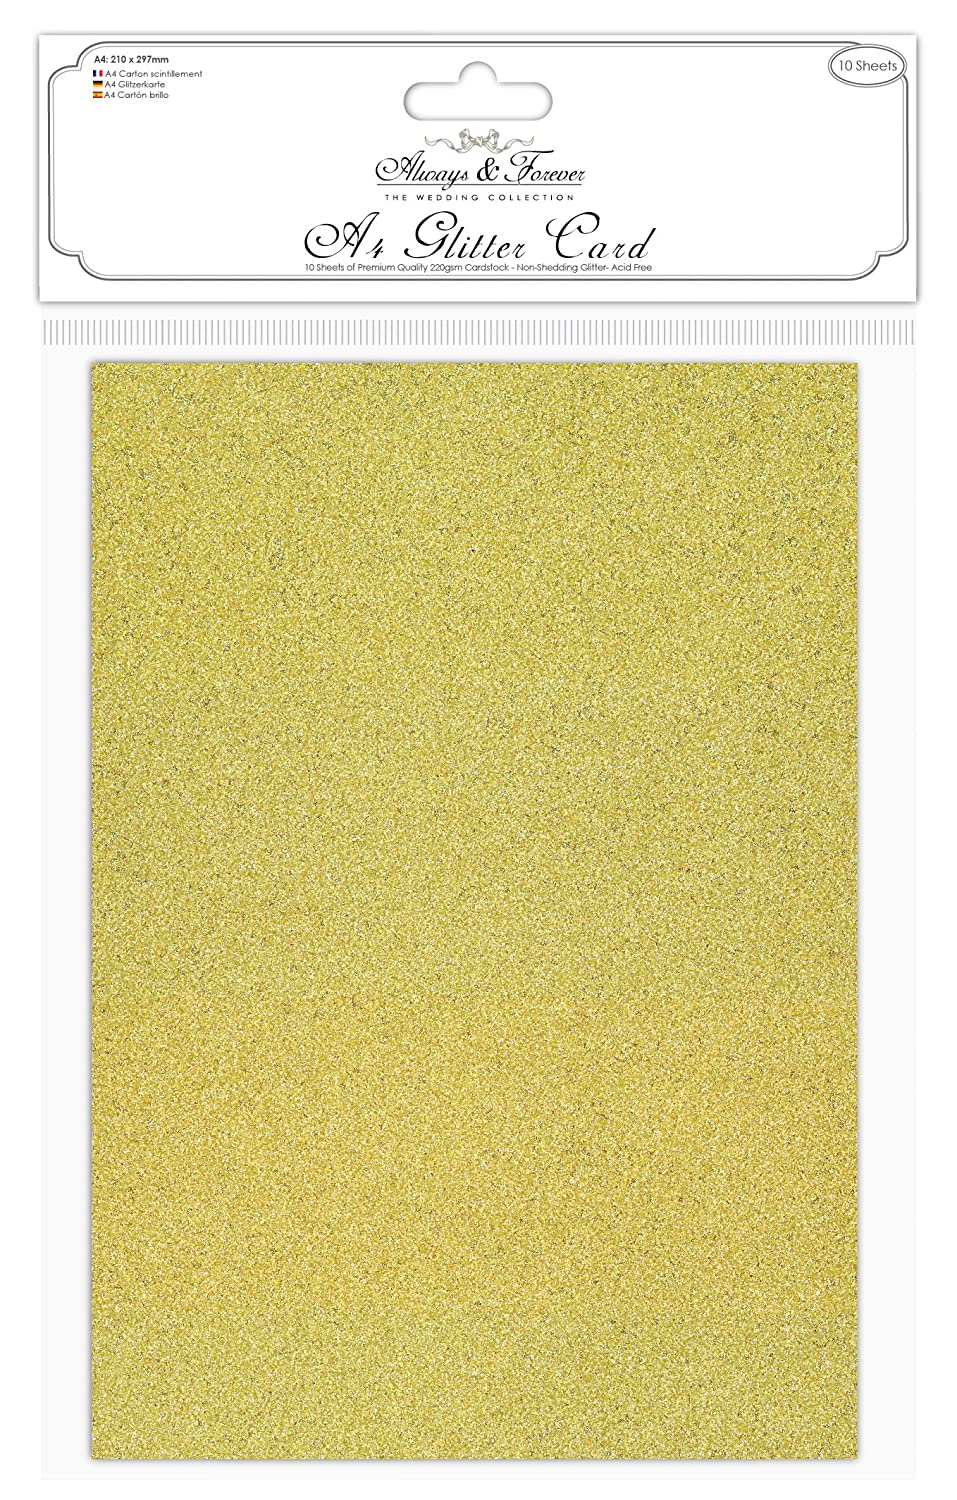 Gold Glitter Card A4 soft touch low shed excellent quality various pack sizes